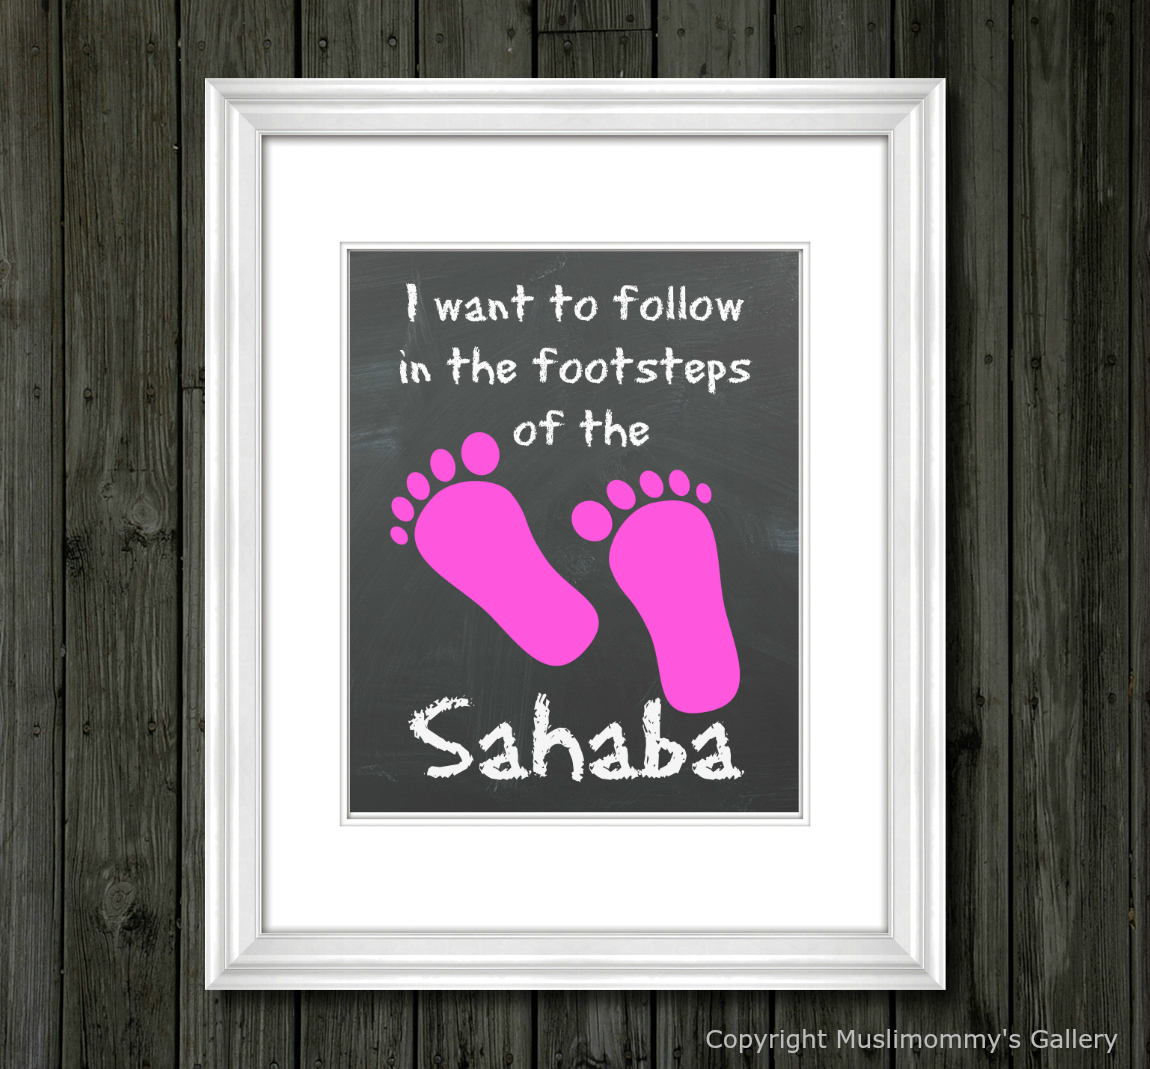 FOOTSTEPS OF THE SAHABA (PINK)